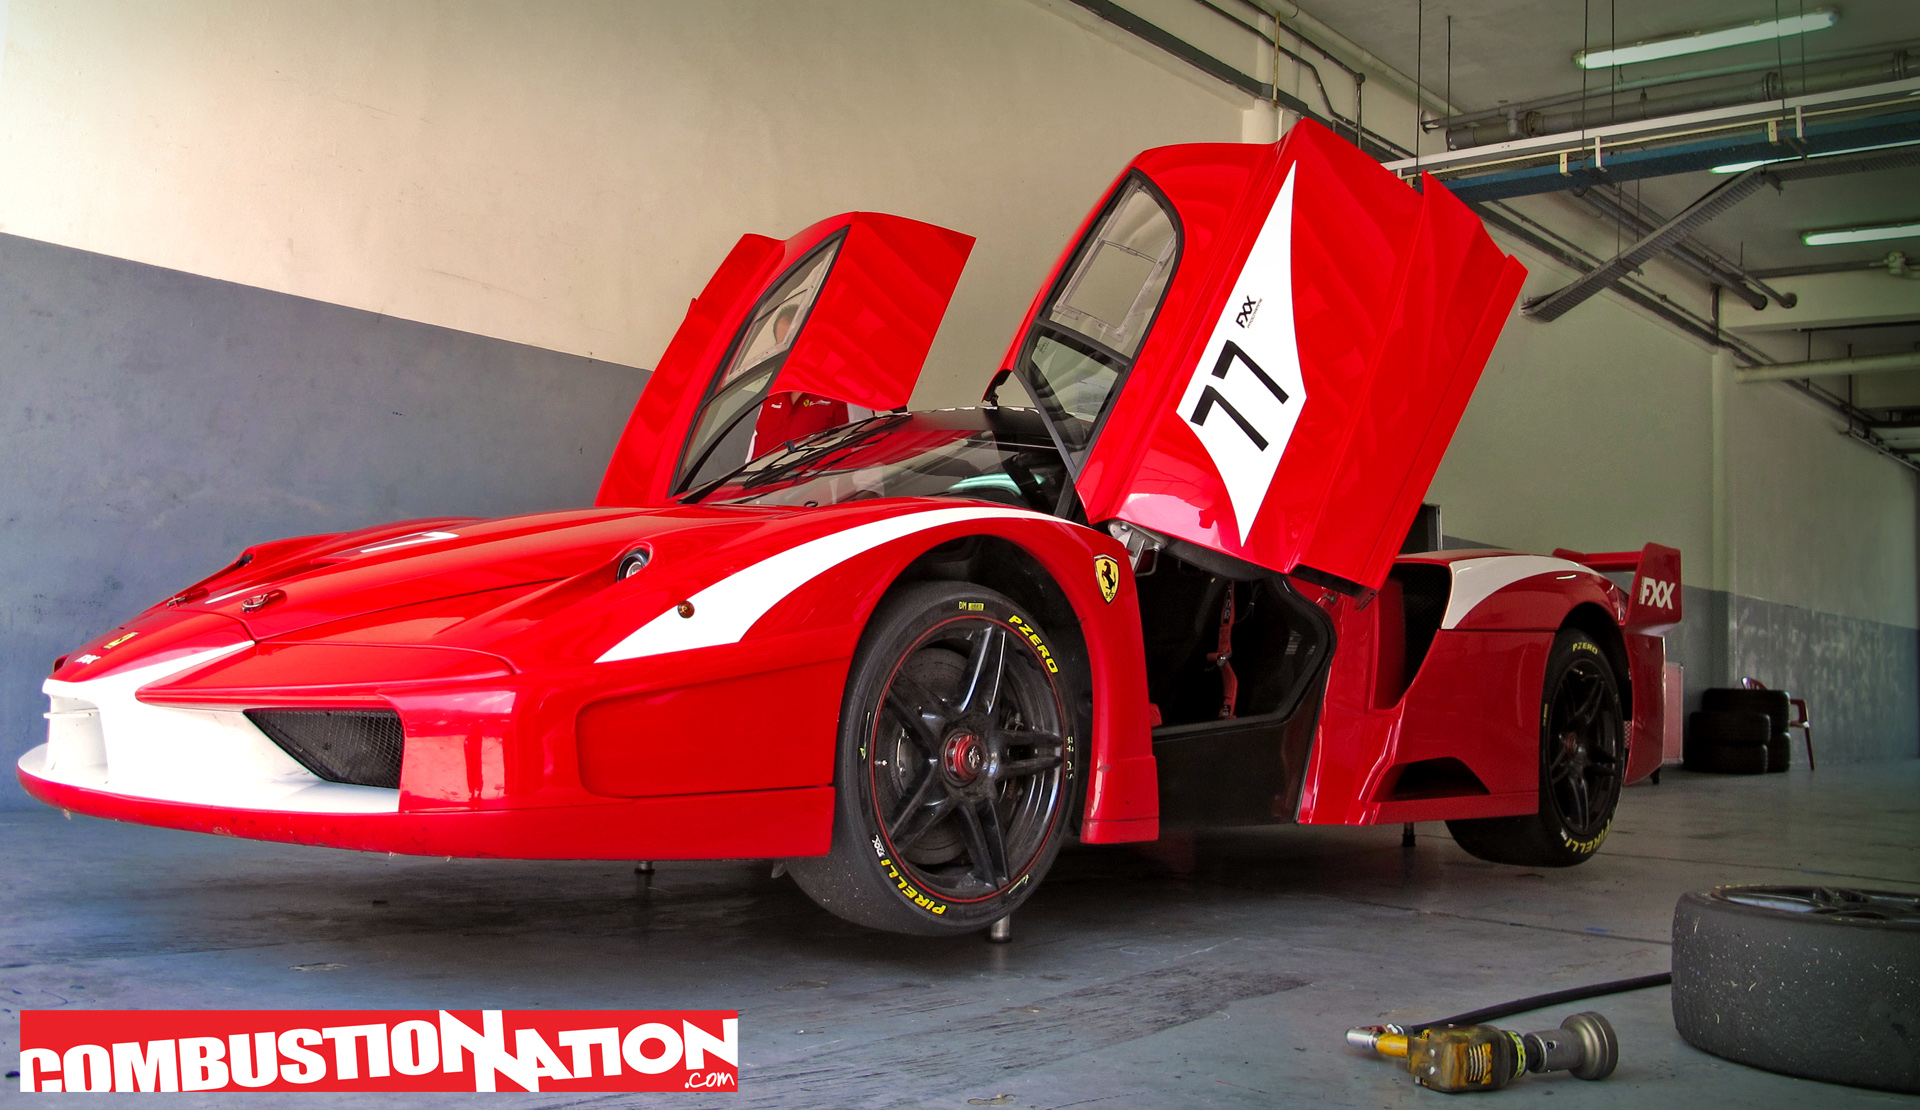 FXX stands